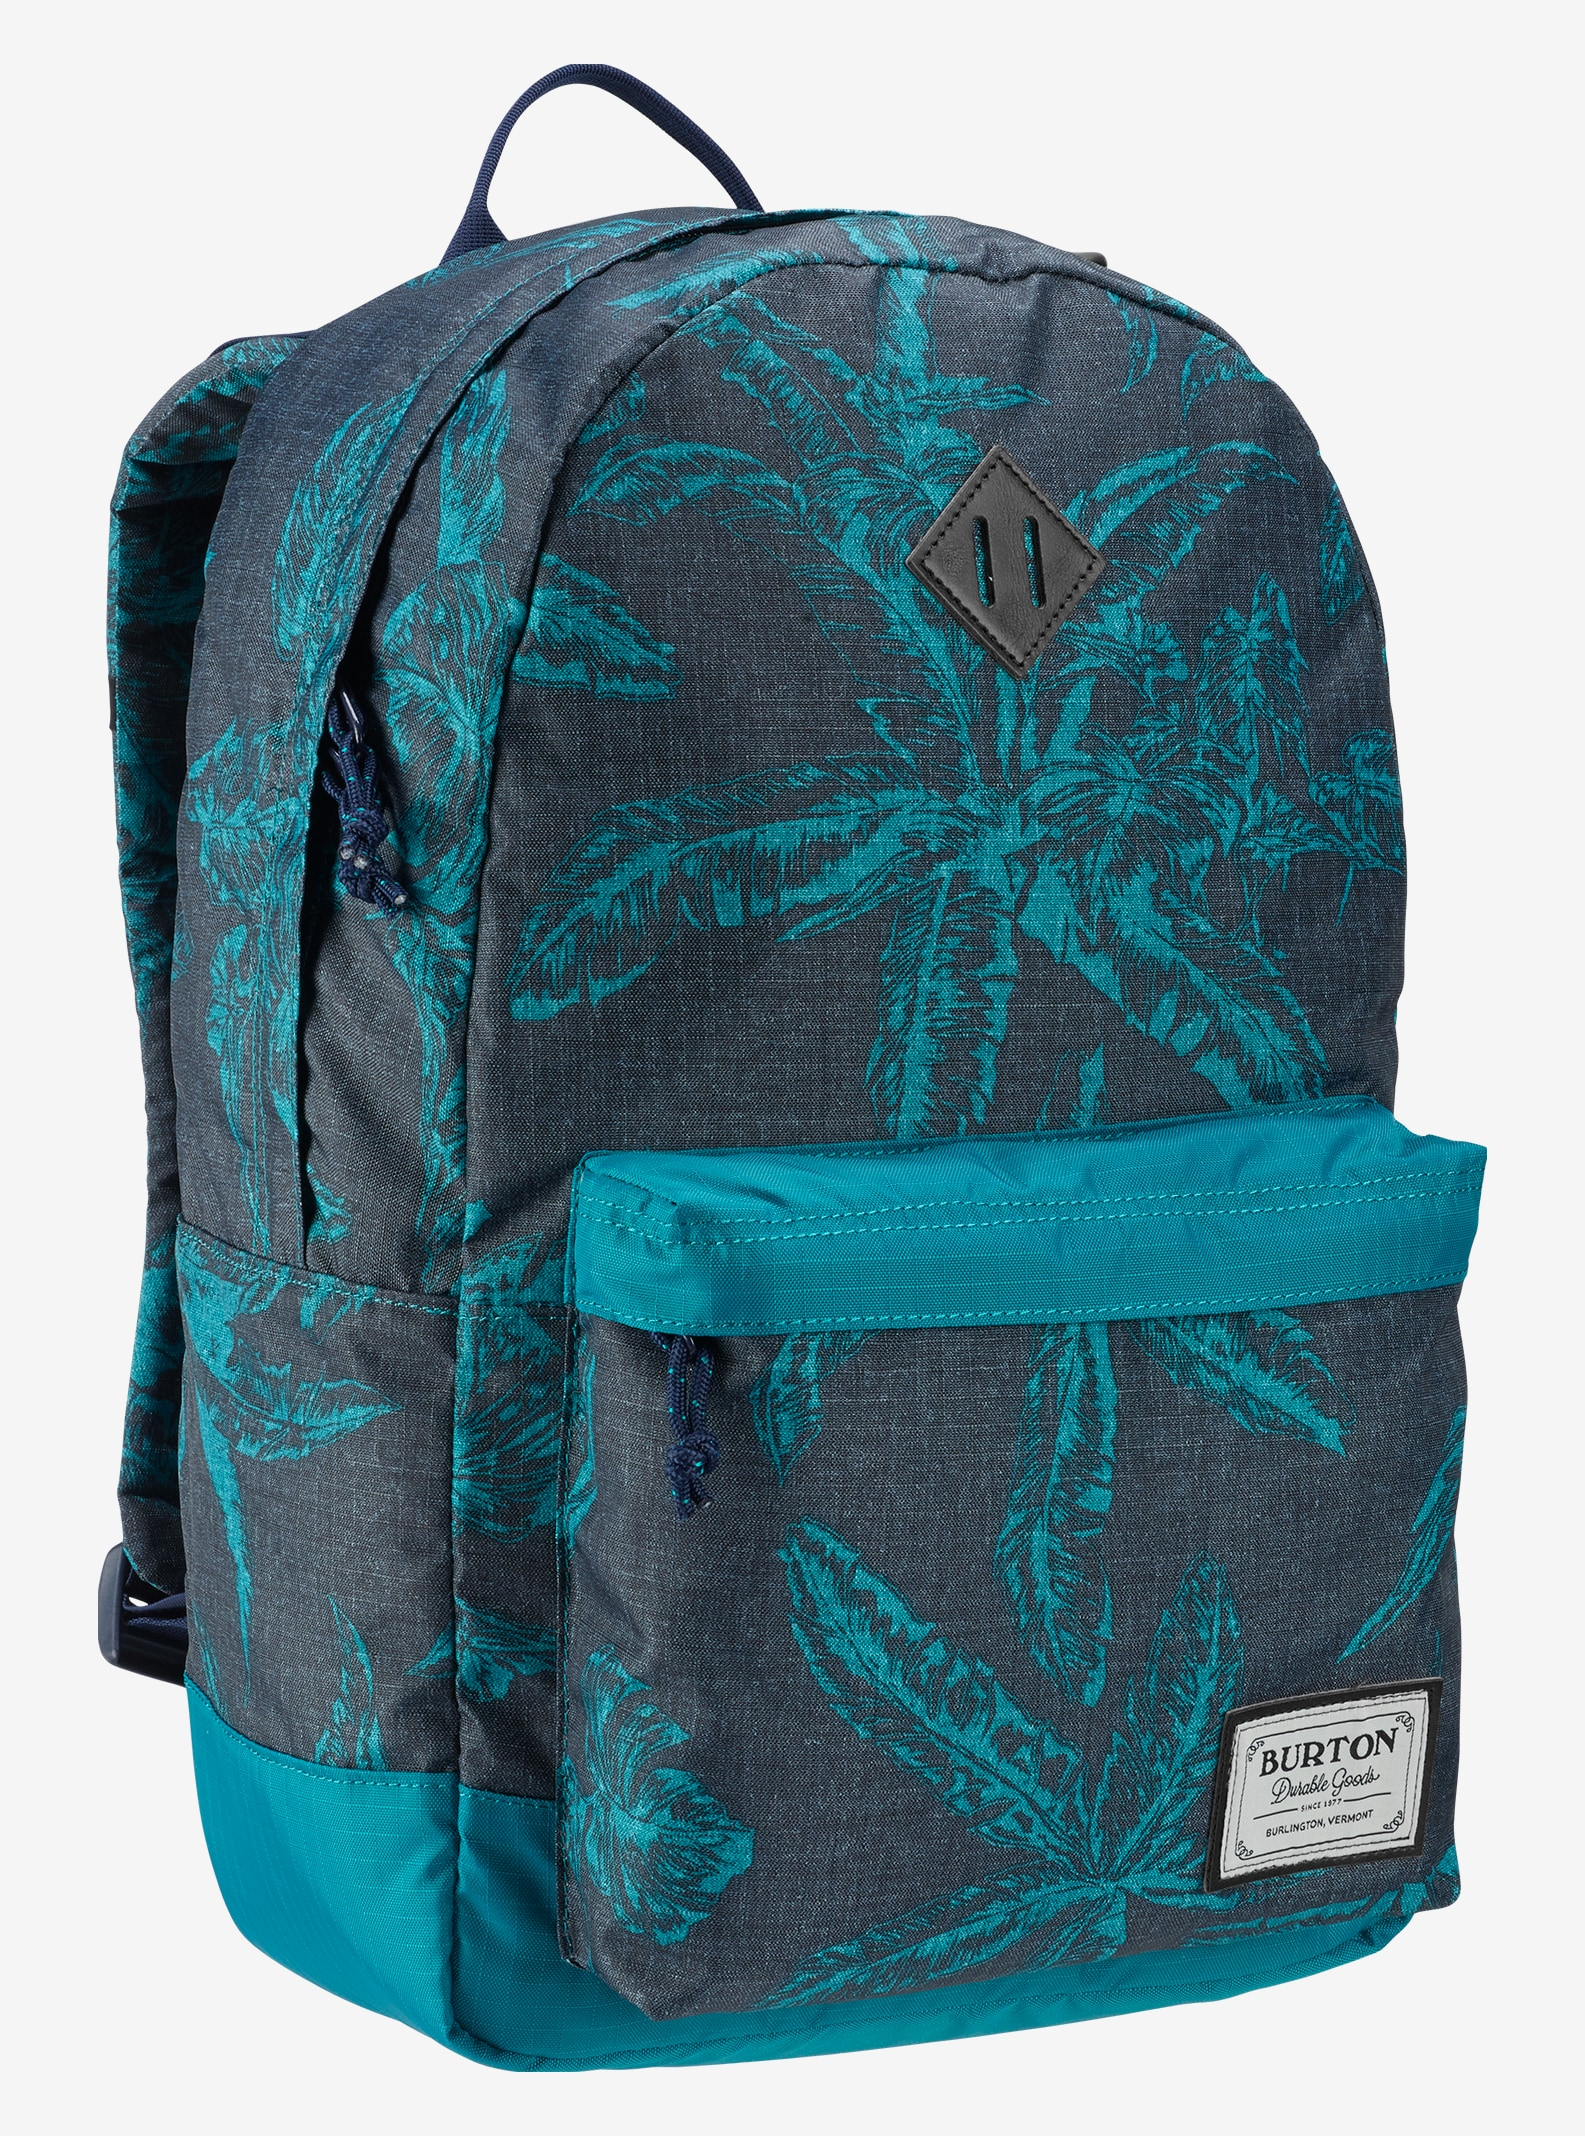 Burton Kettle Backpack shown in Tropical Print